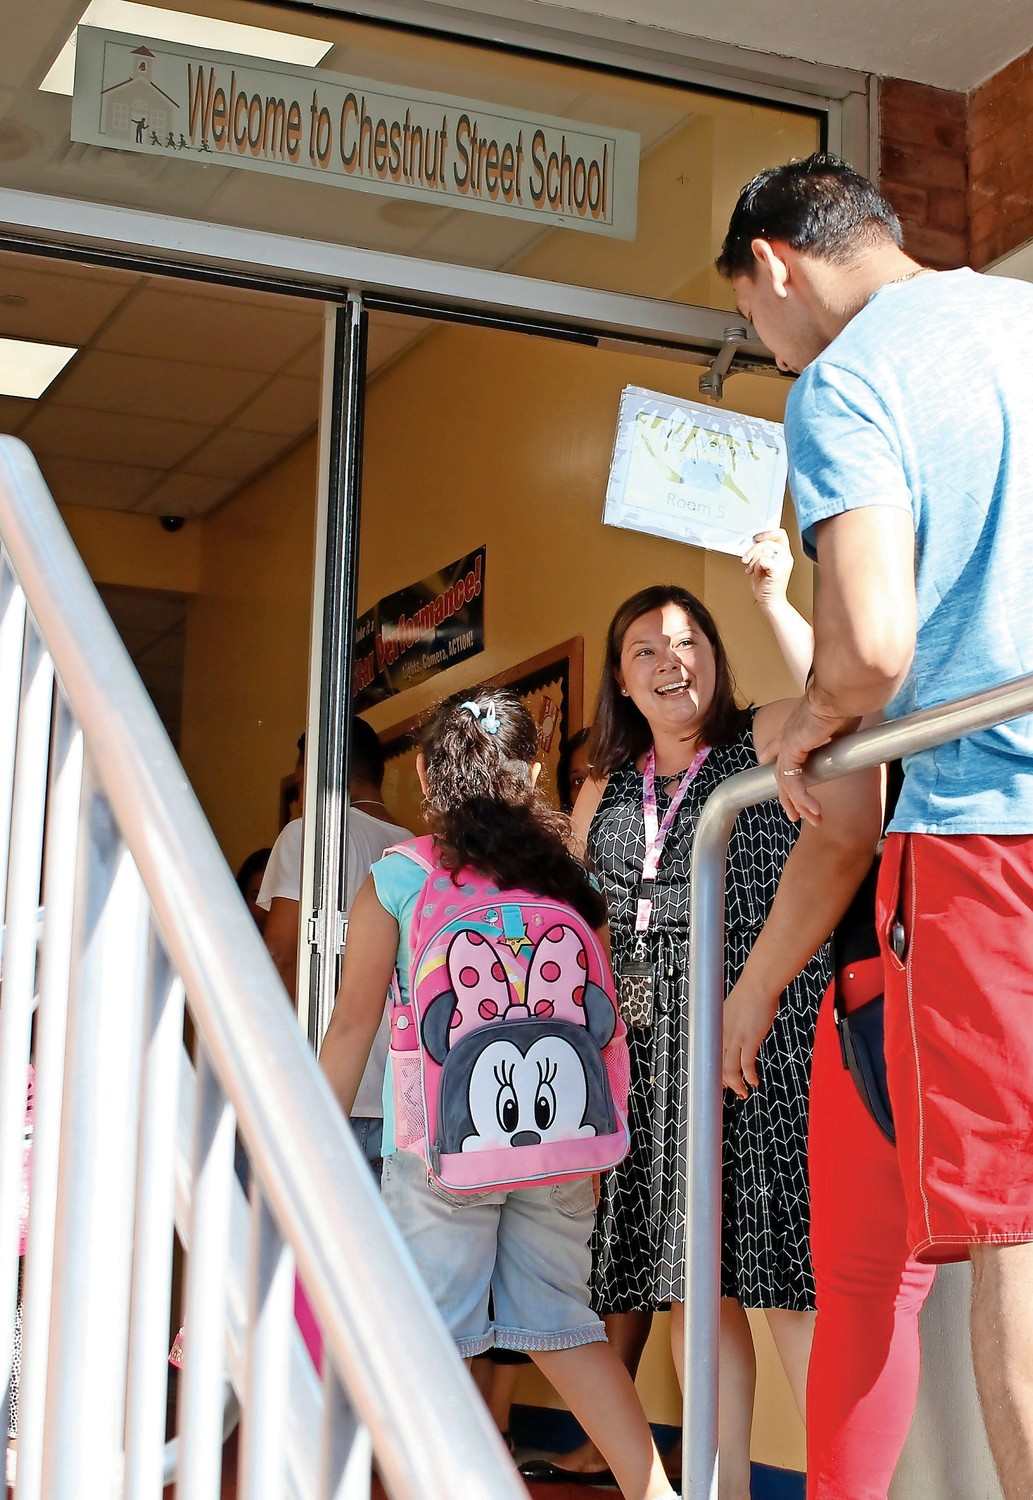 Chestnut Street School Principal Faith Tripp welcomed kindergartners, parents and teachers on the first day of classes in West Hemp-stead on Sept. 5.